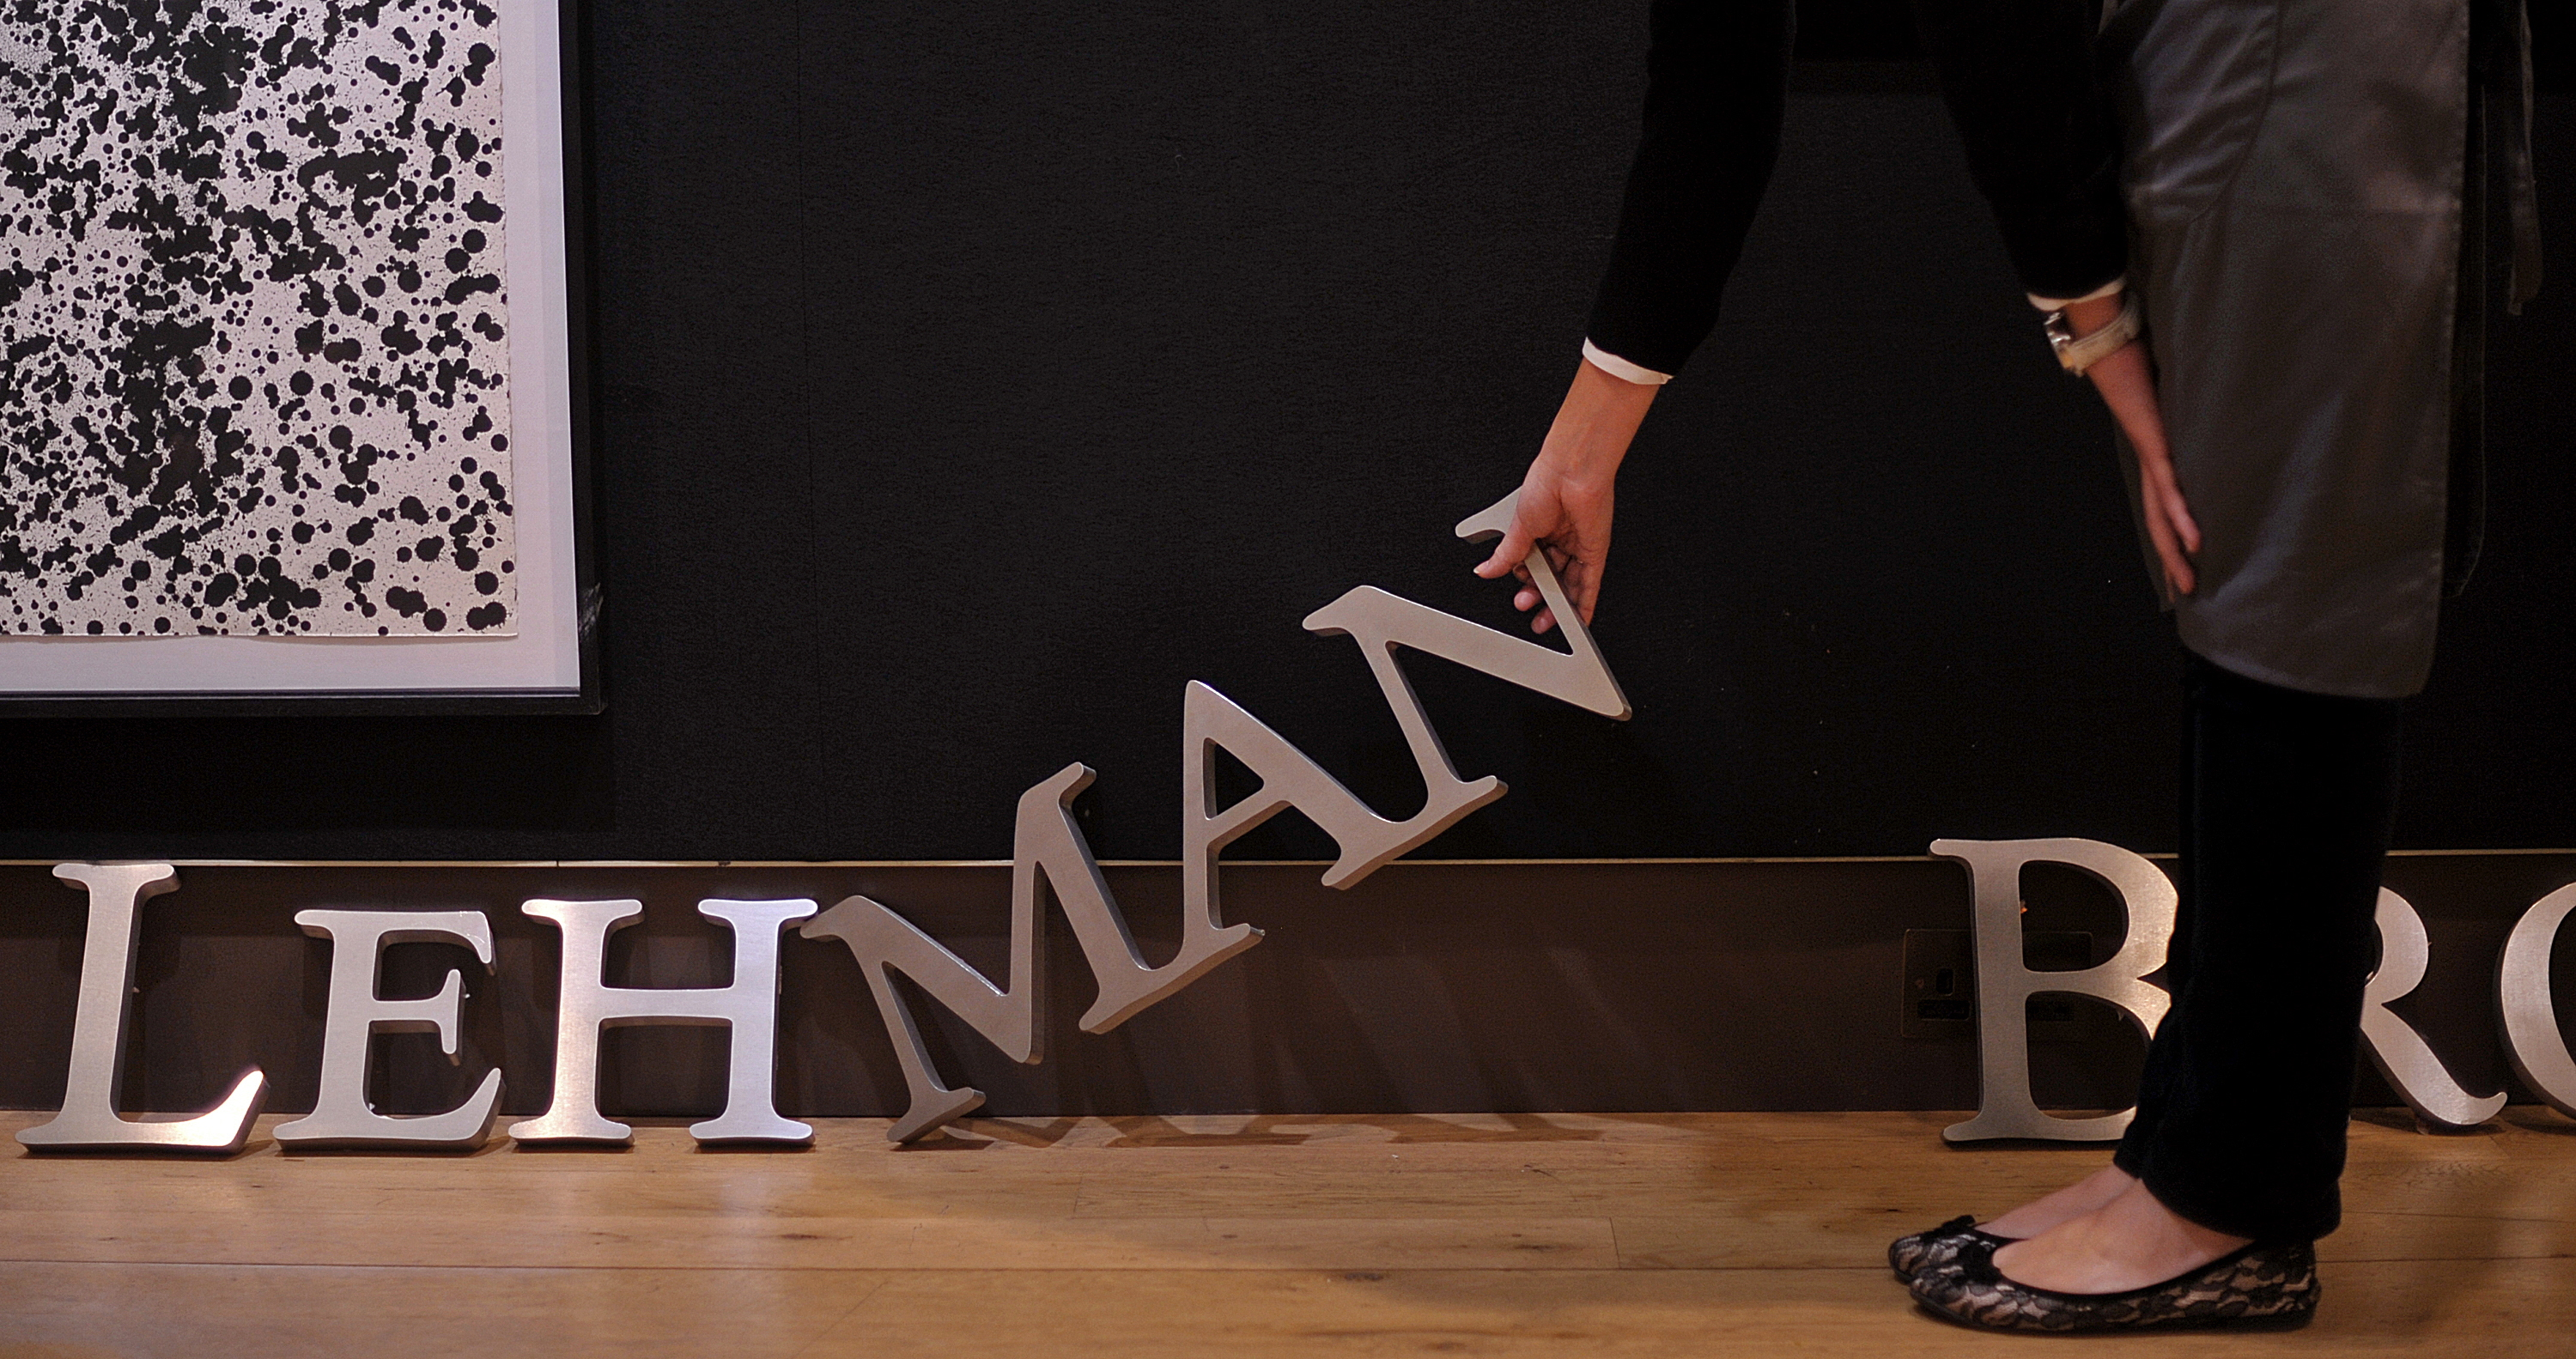 Part of a Lehman Brothers company sign at Christie's auction house in London on September 24, 2010.